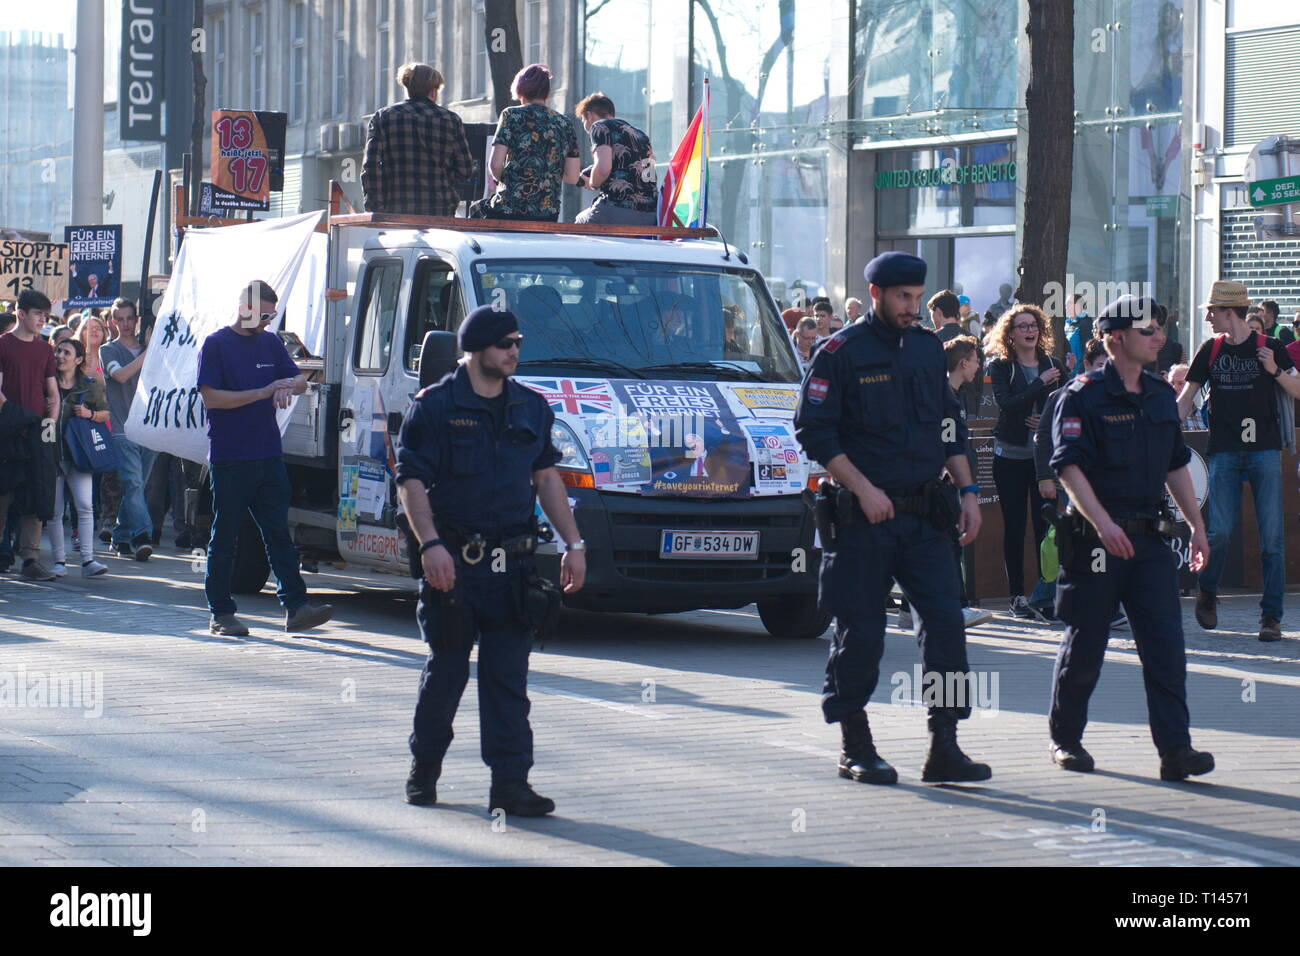 """Vienna, Austria. 23.März.2019. EU continues protest day against planned copyright reform and upload filter: Demonstration """"Save Your Internet"""". Credit: Franz Perc / Alamy Live News Stock Photo"""